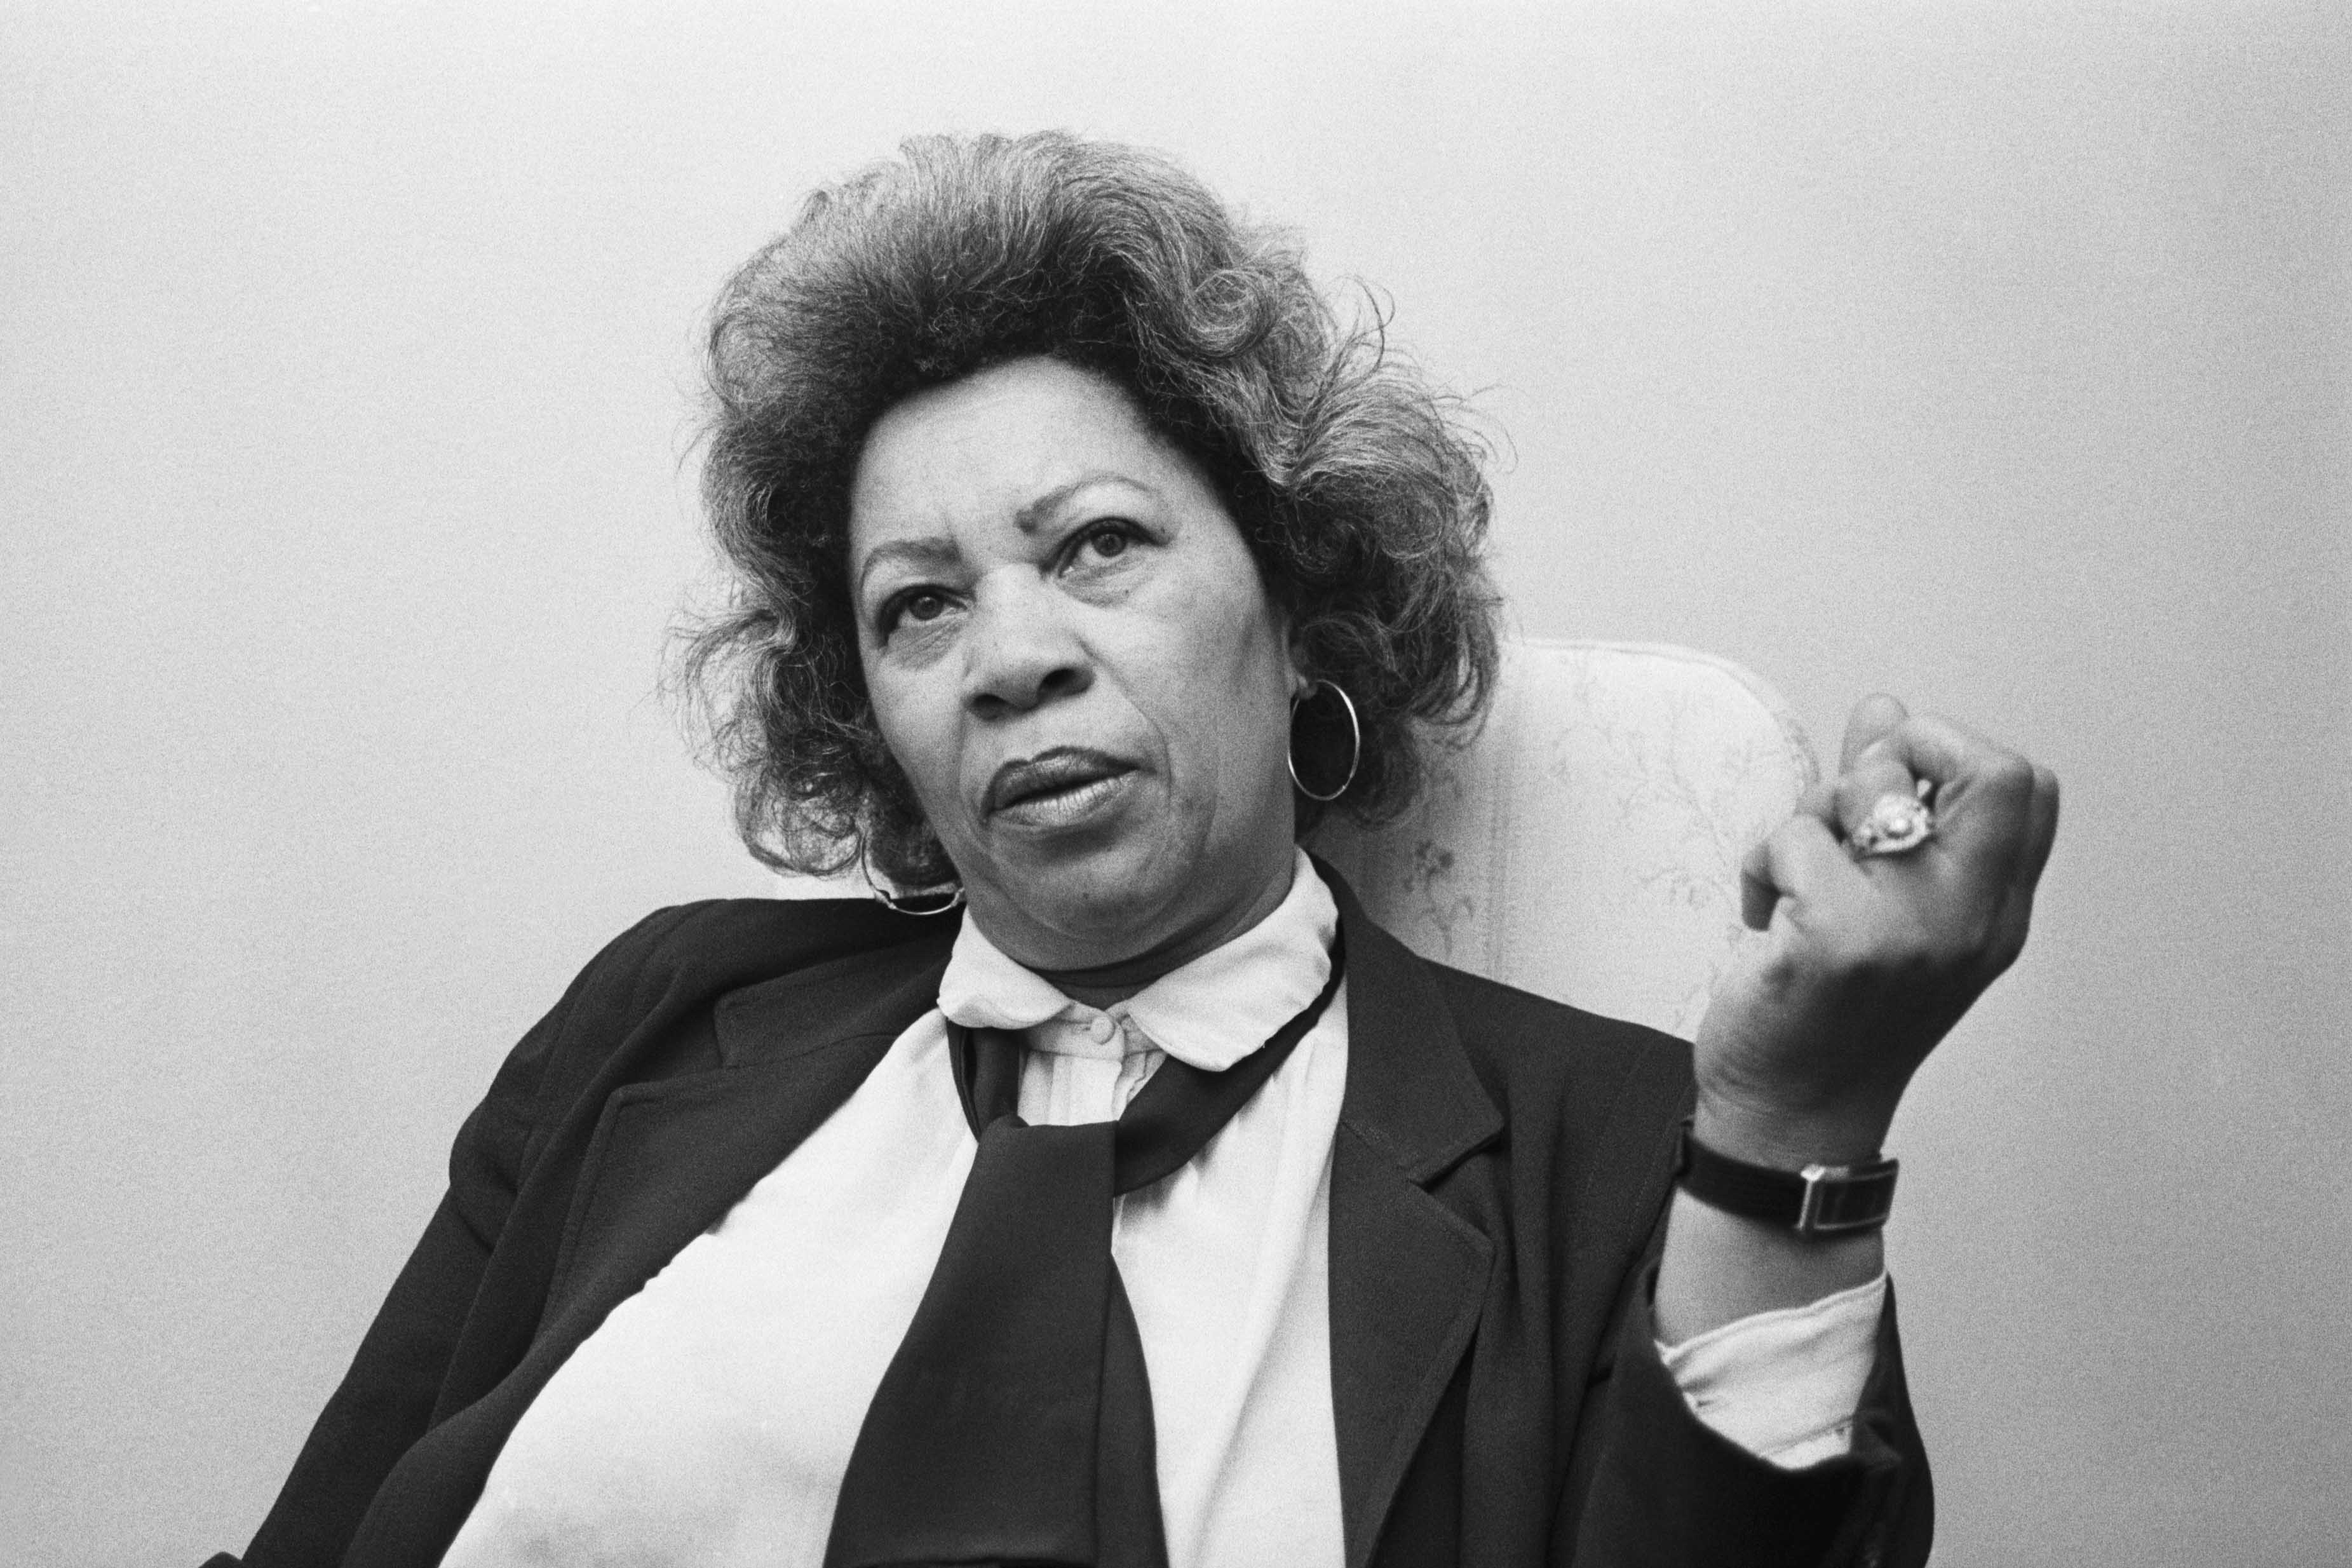 23 December 1985: In Albany, New York, novelist Toni Morrison discusses her venture into playwriting.